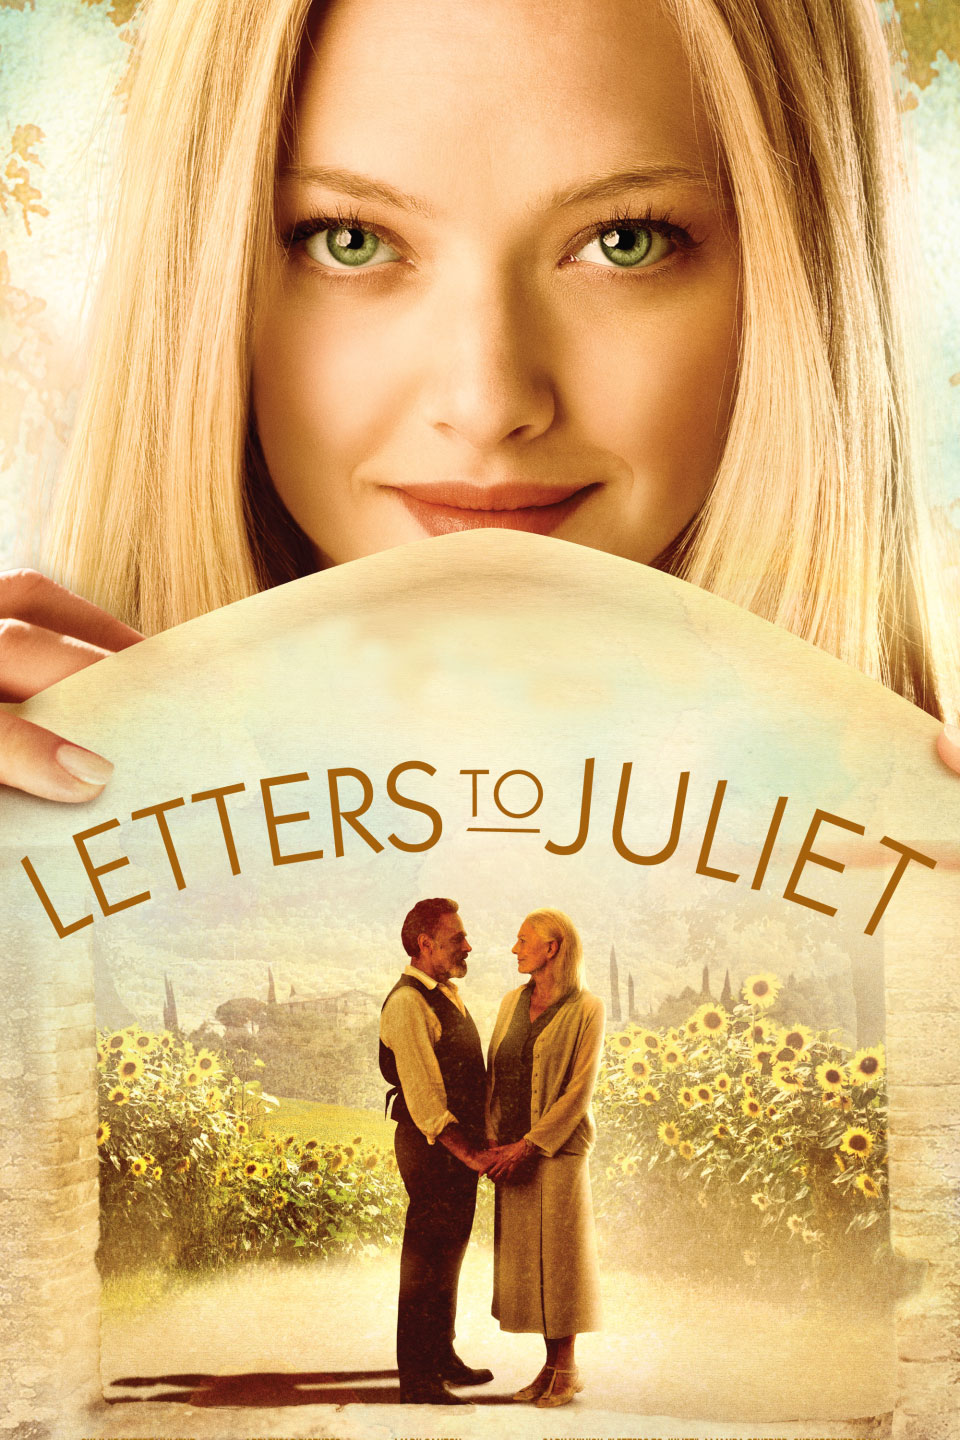 letters to juliet full movie fmovies